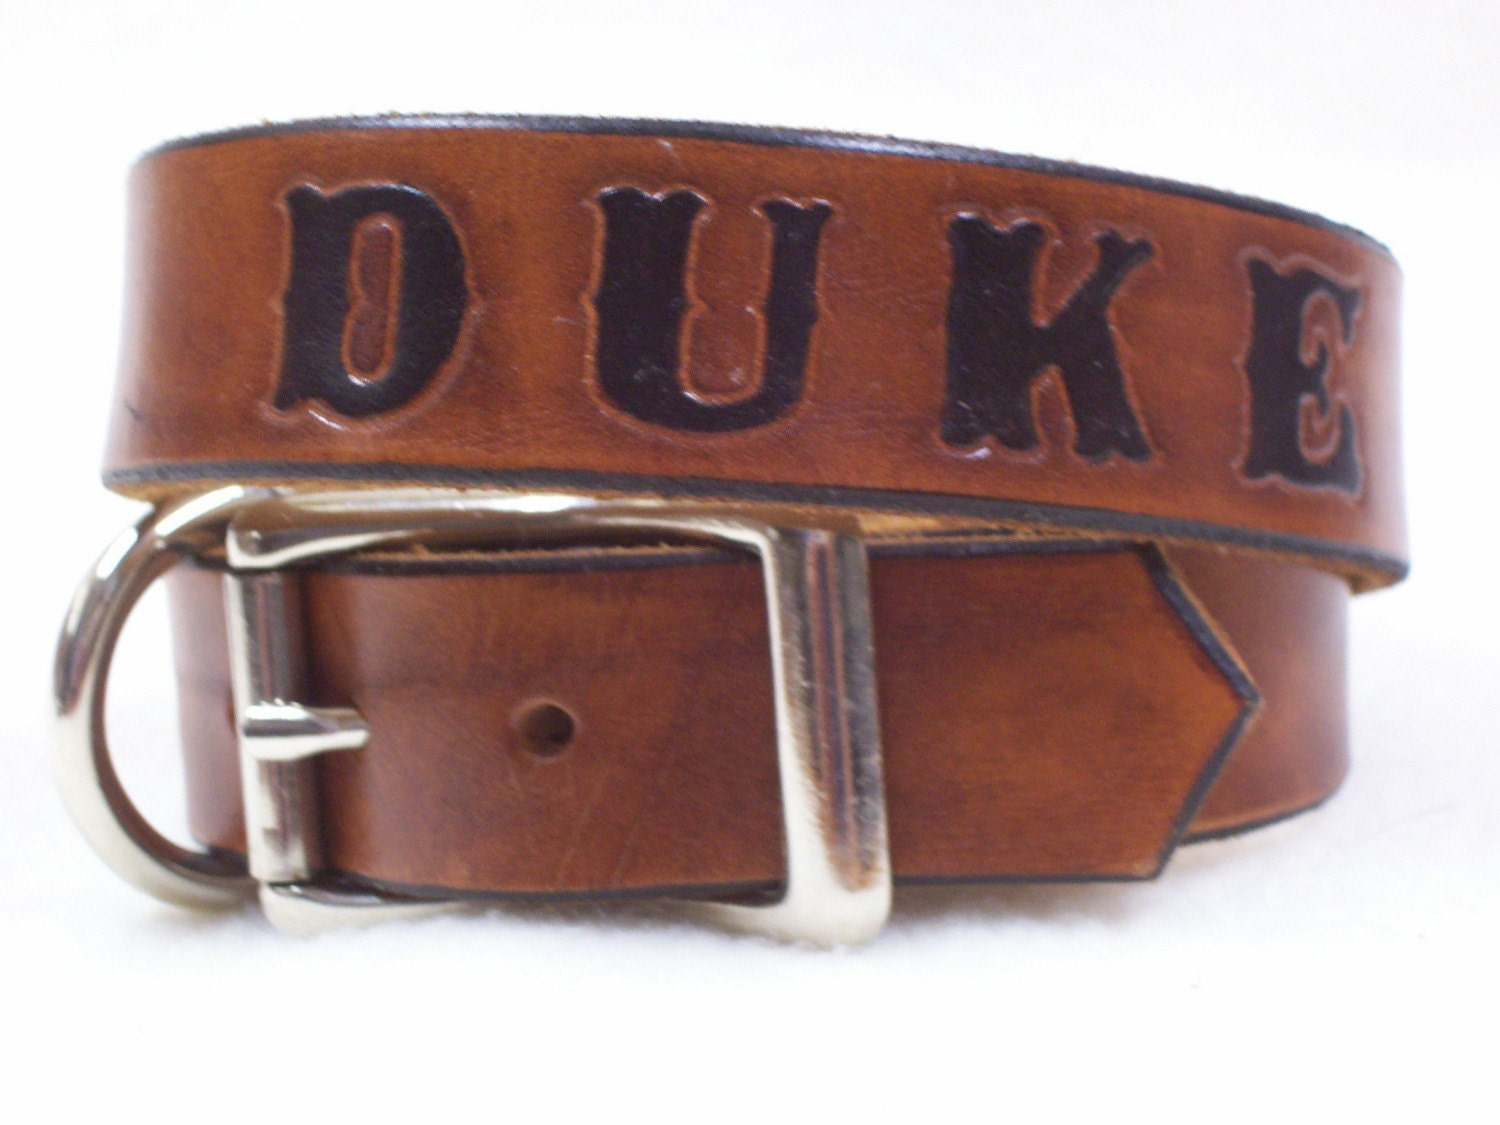 Personalized Leather Dog Collars And Leashes